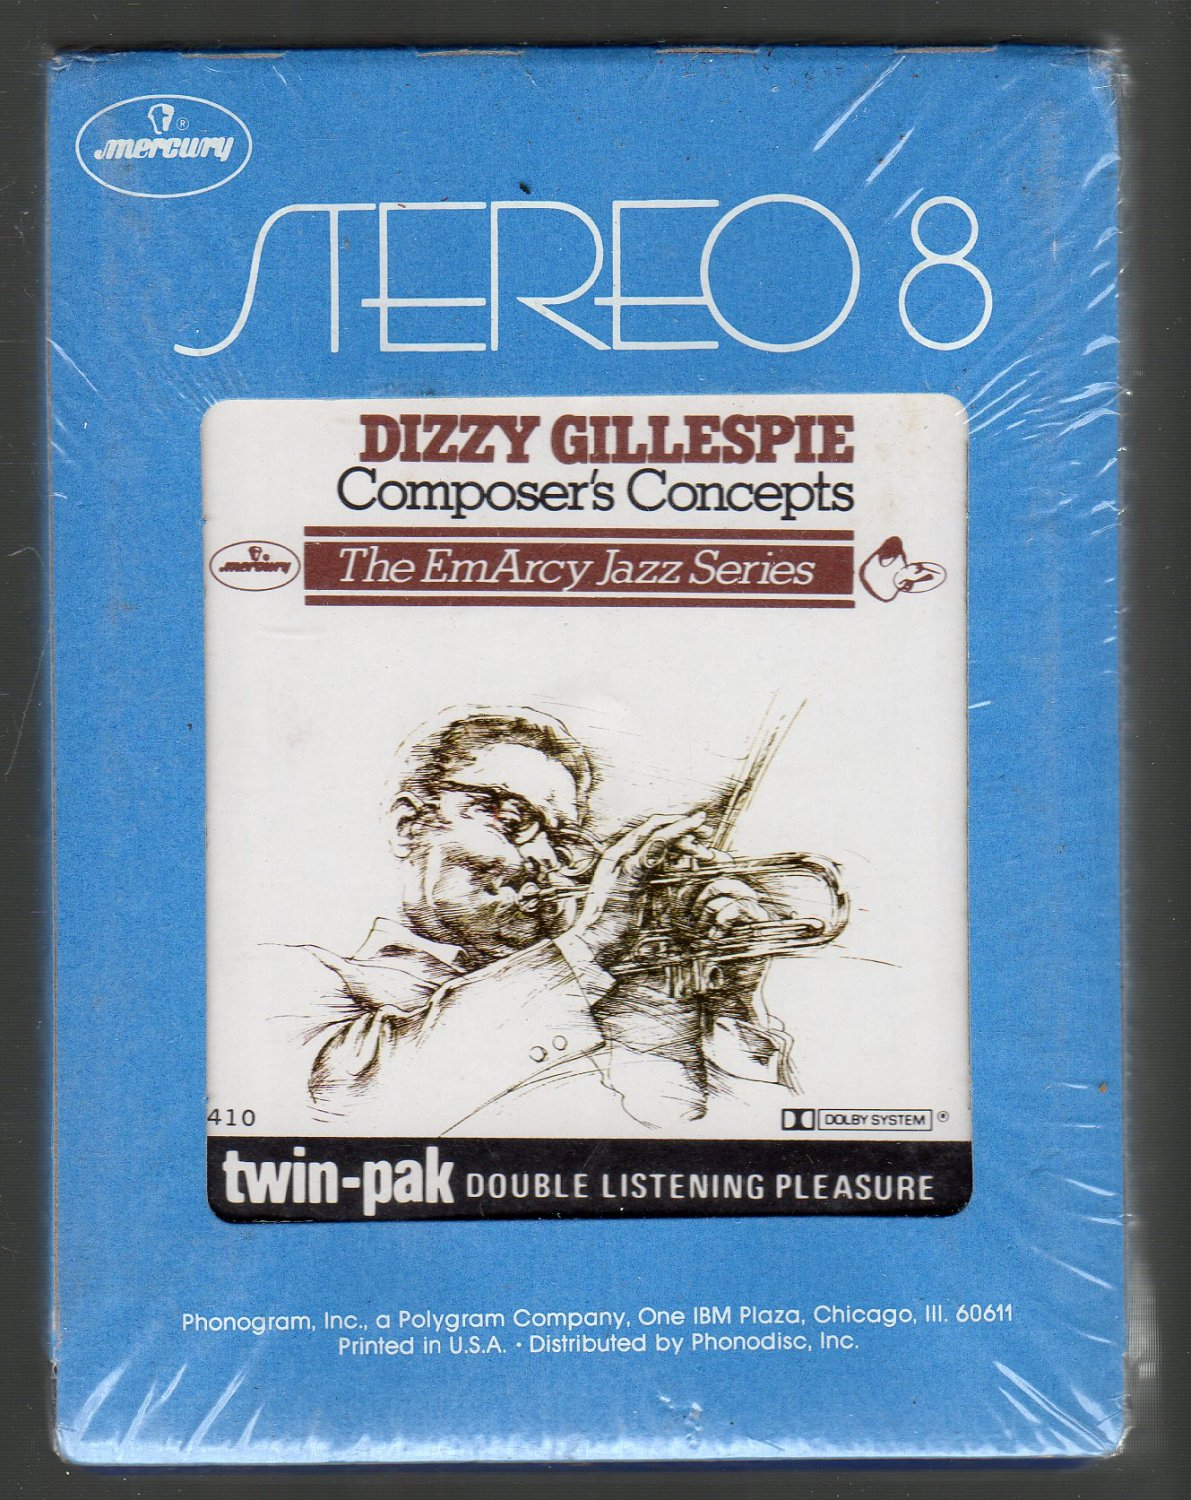 Dizzy Gillespie - Composer's Concepts Sealed 8-track tape